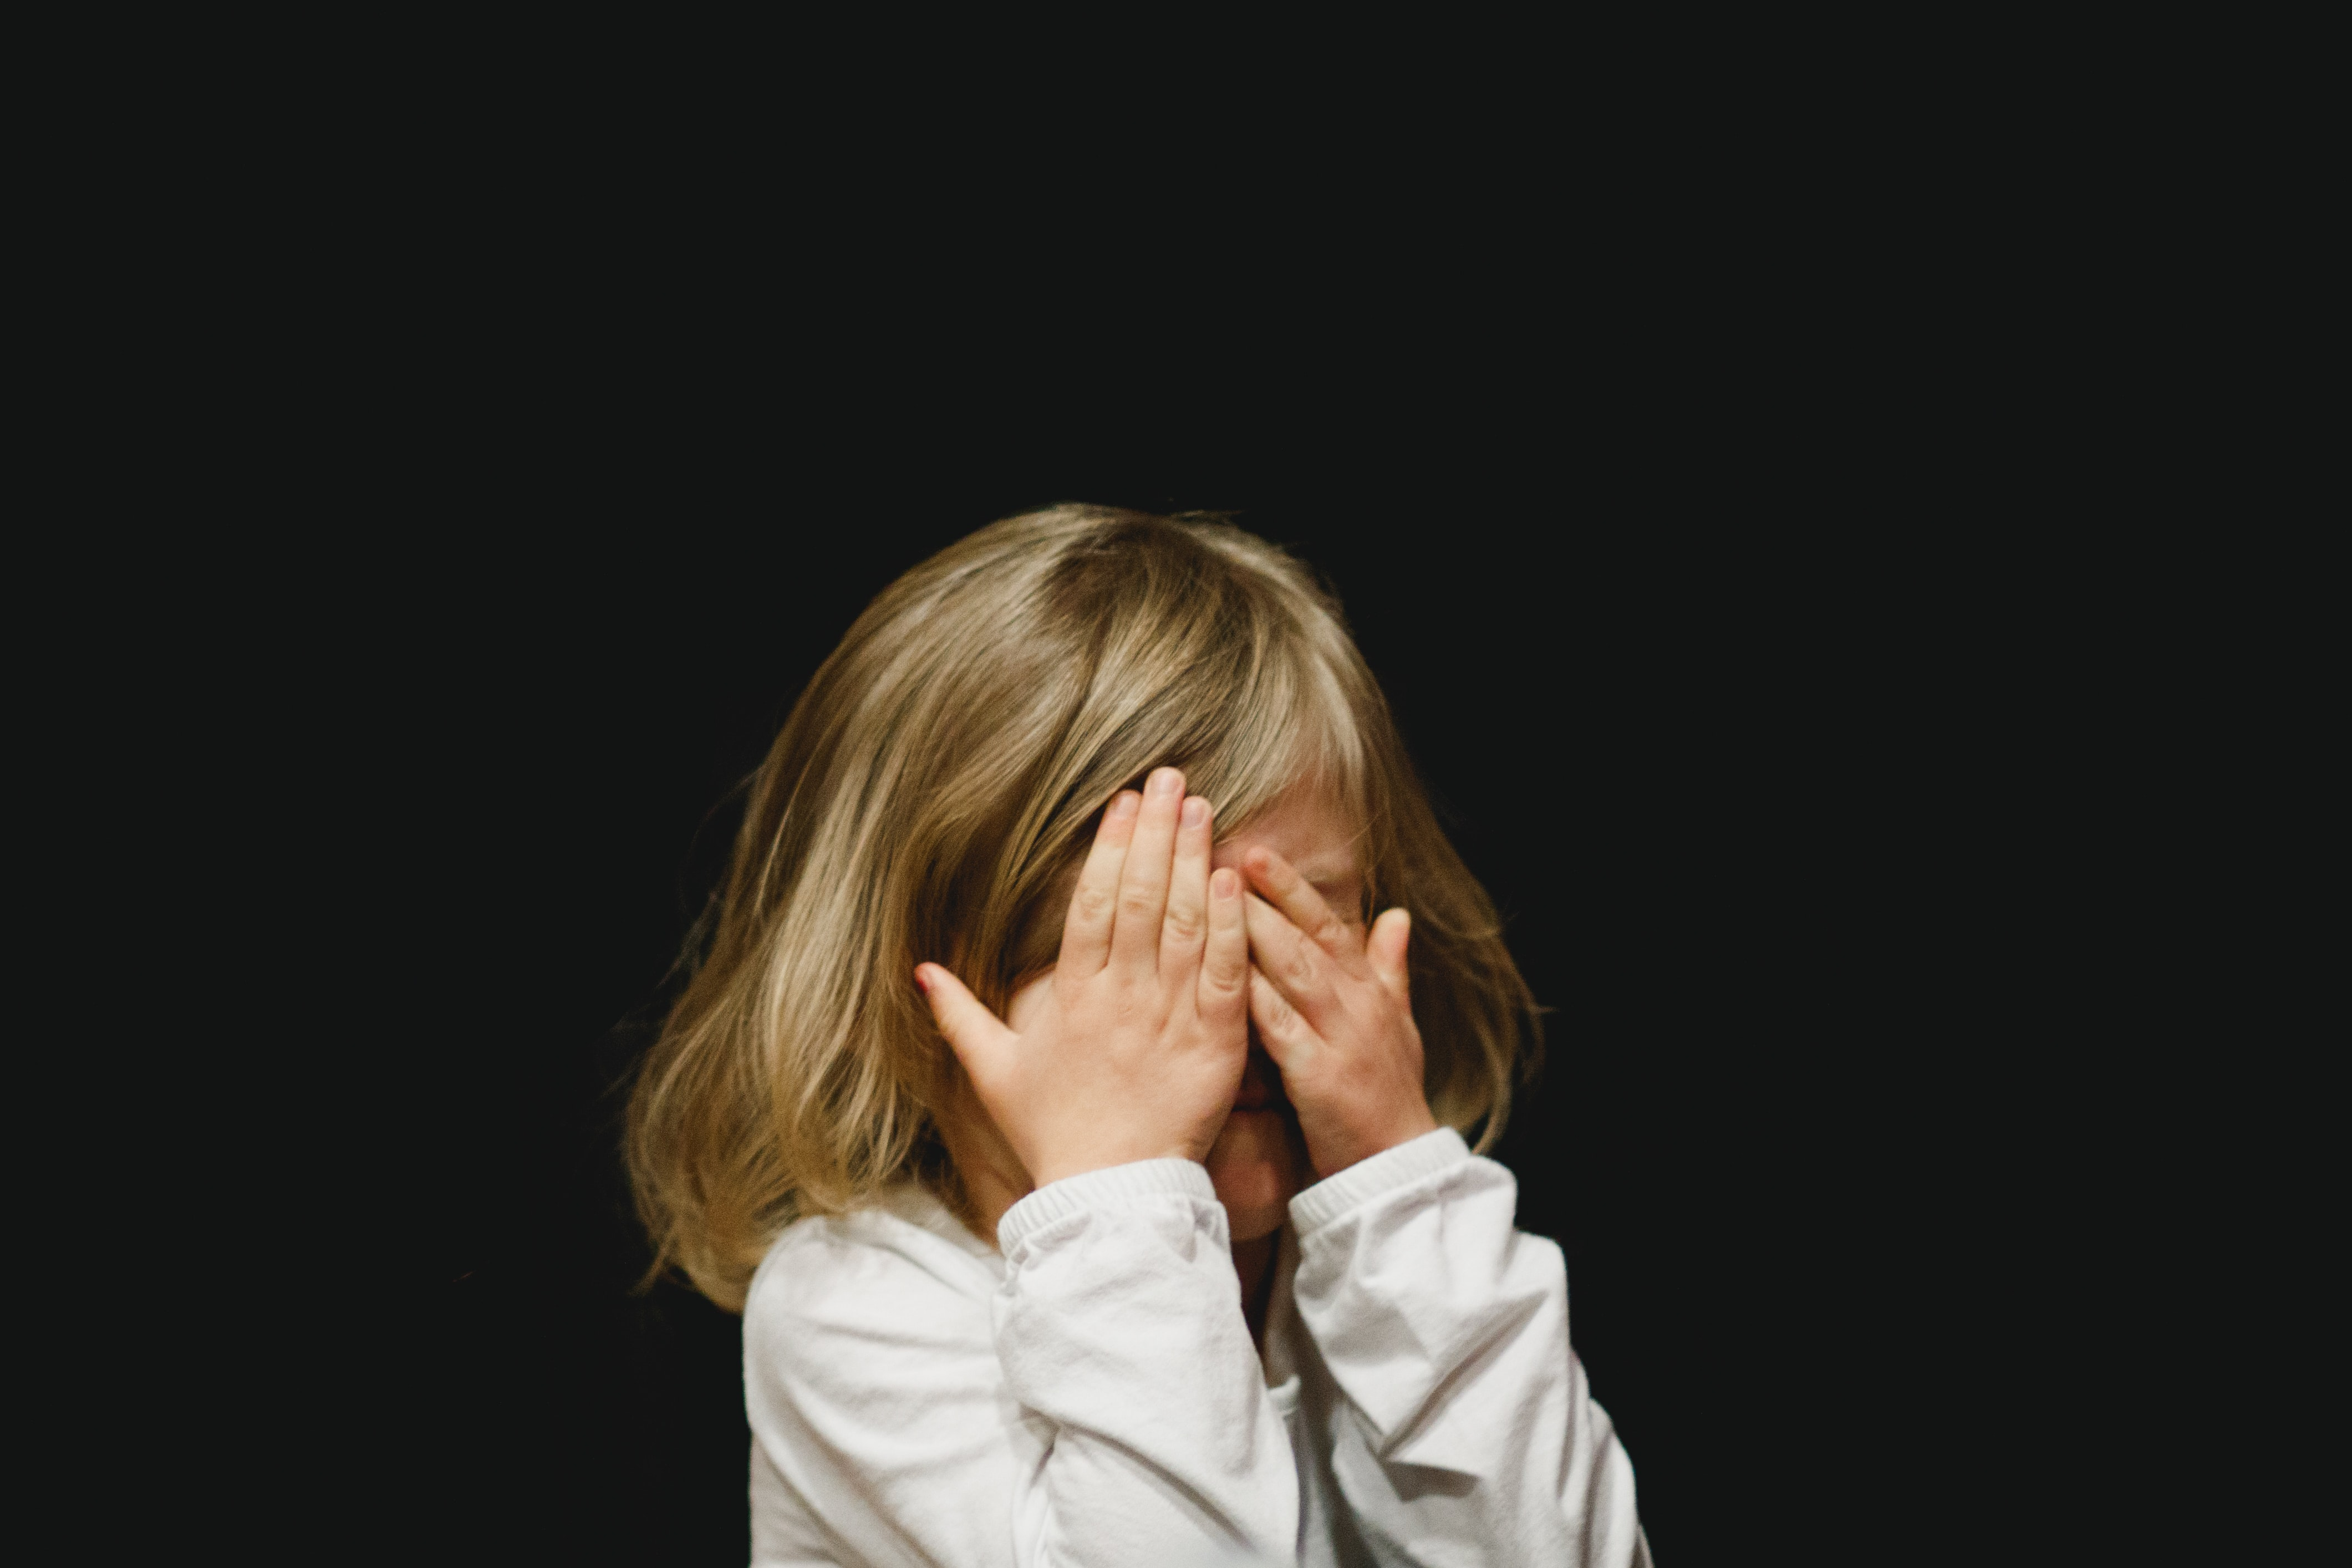 Little blonde hair girl covering her face with hands